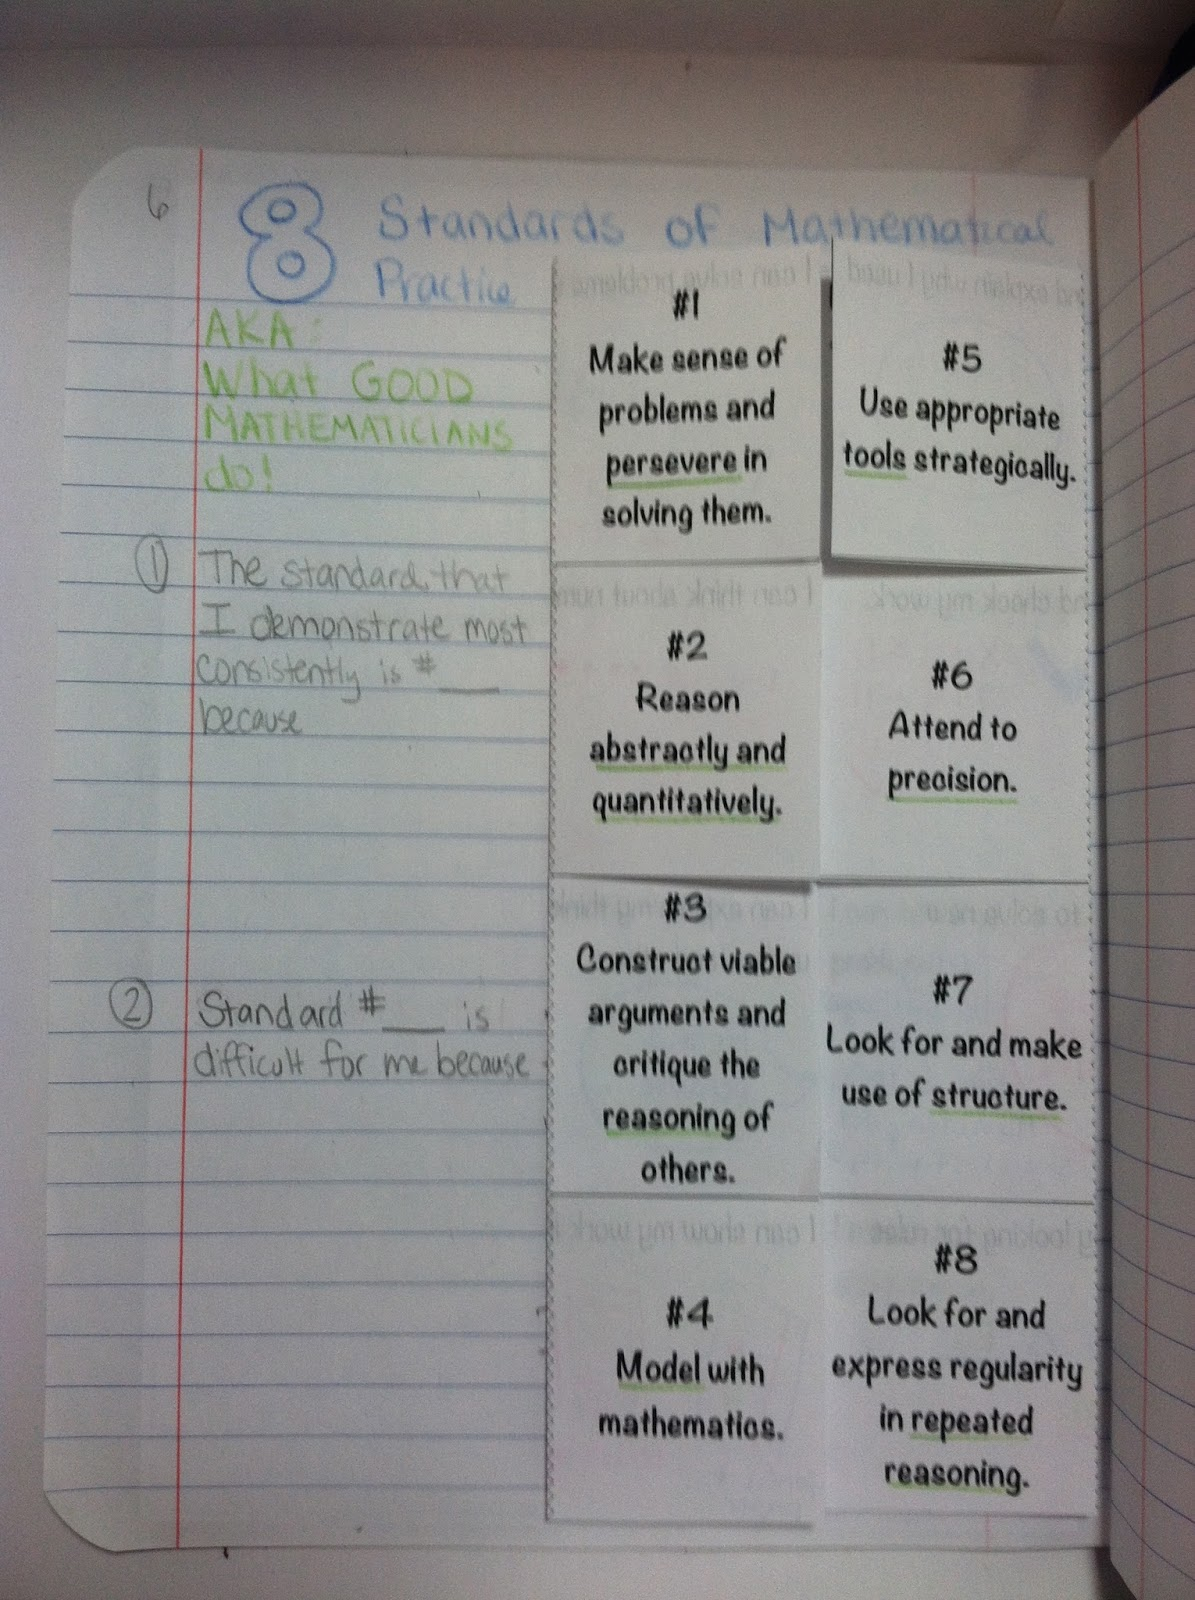 i is a number: Foldable for 8 Standards of Mathematical Practice